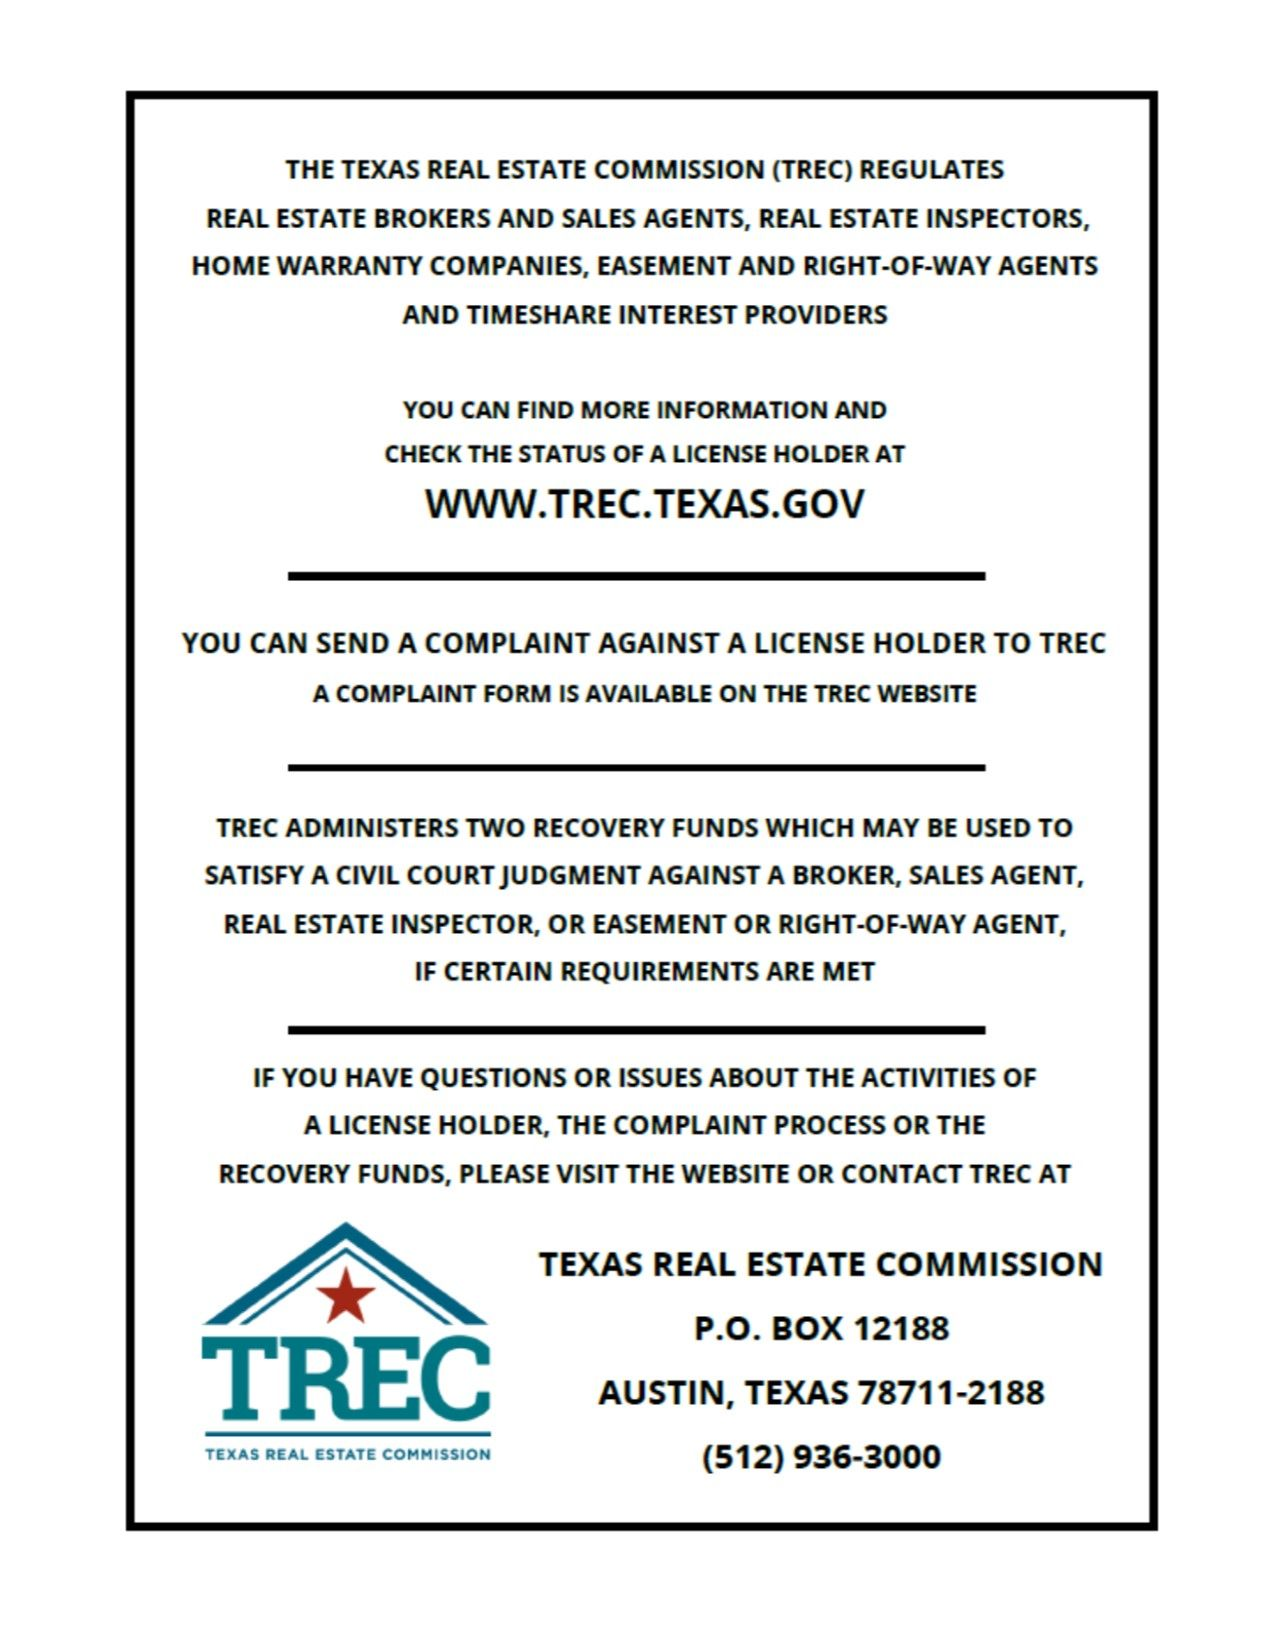 Texas Real Estate Commission Consumer Protection Notice Texas Real Estate Real Estate Home Warranty Companies